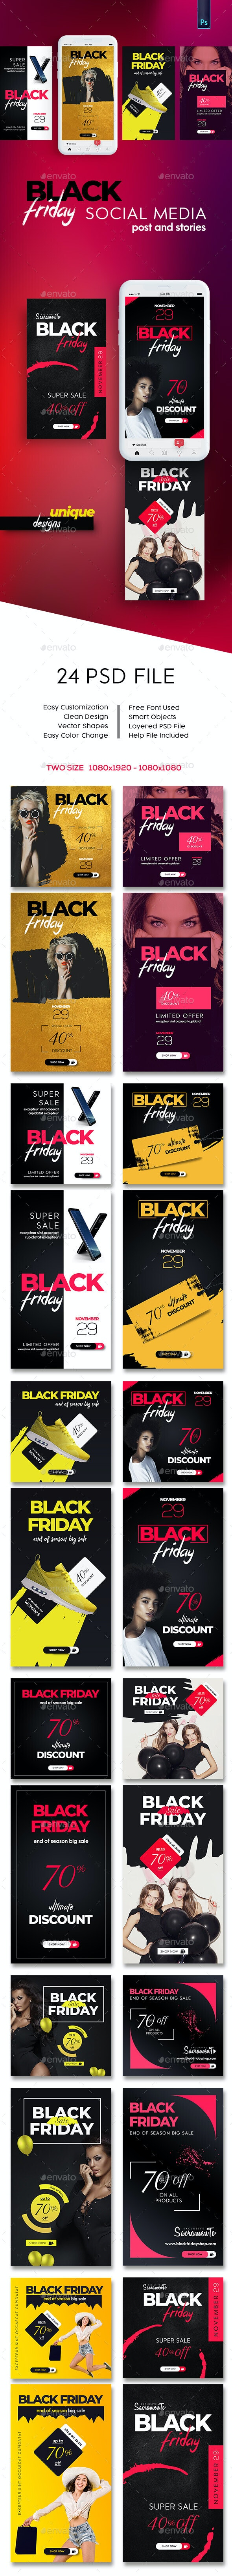 Black Friday Instagram Post and Stories - Social Media Web Elements